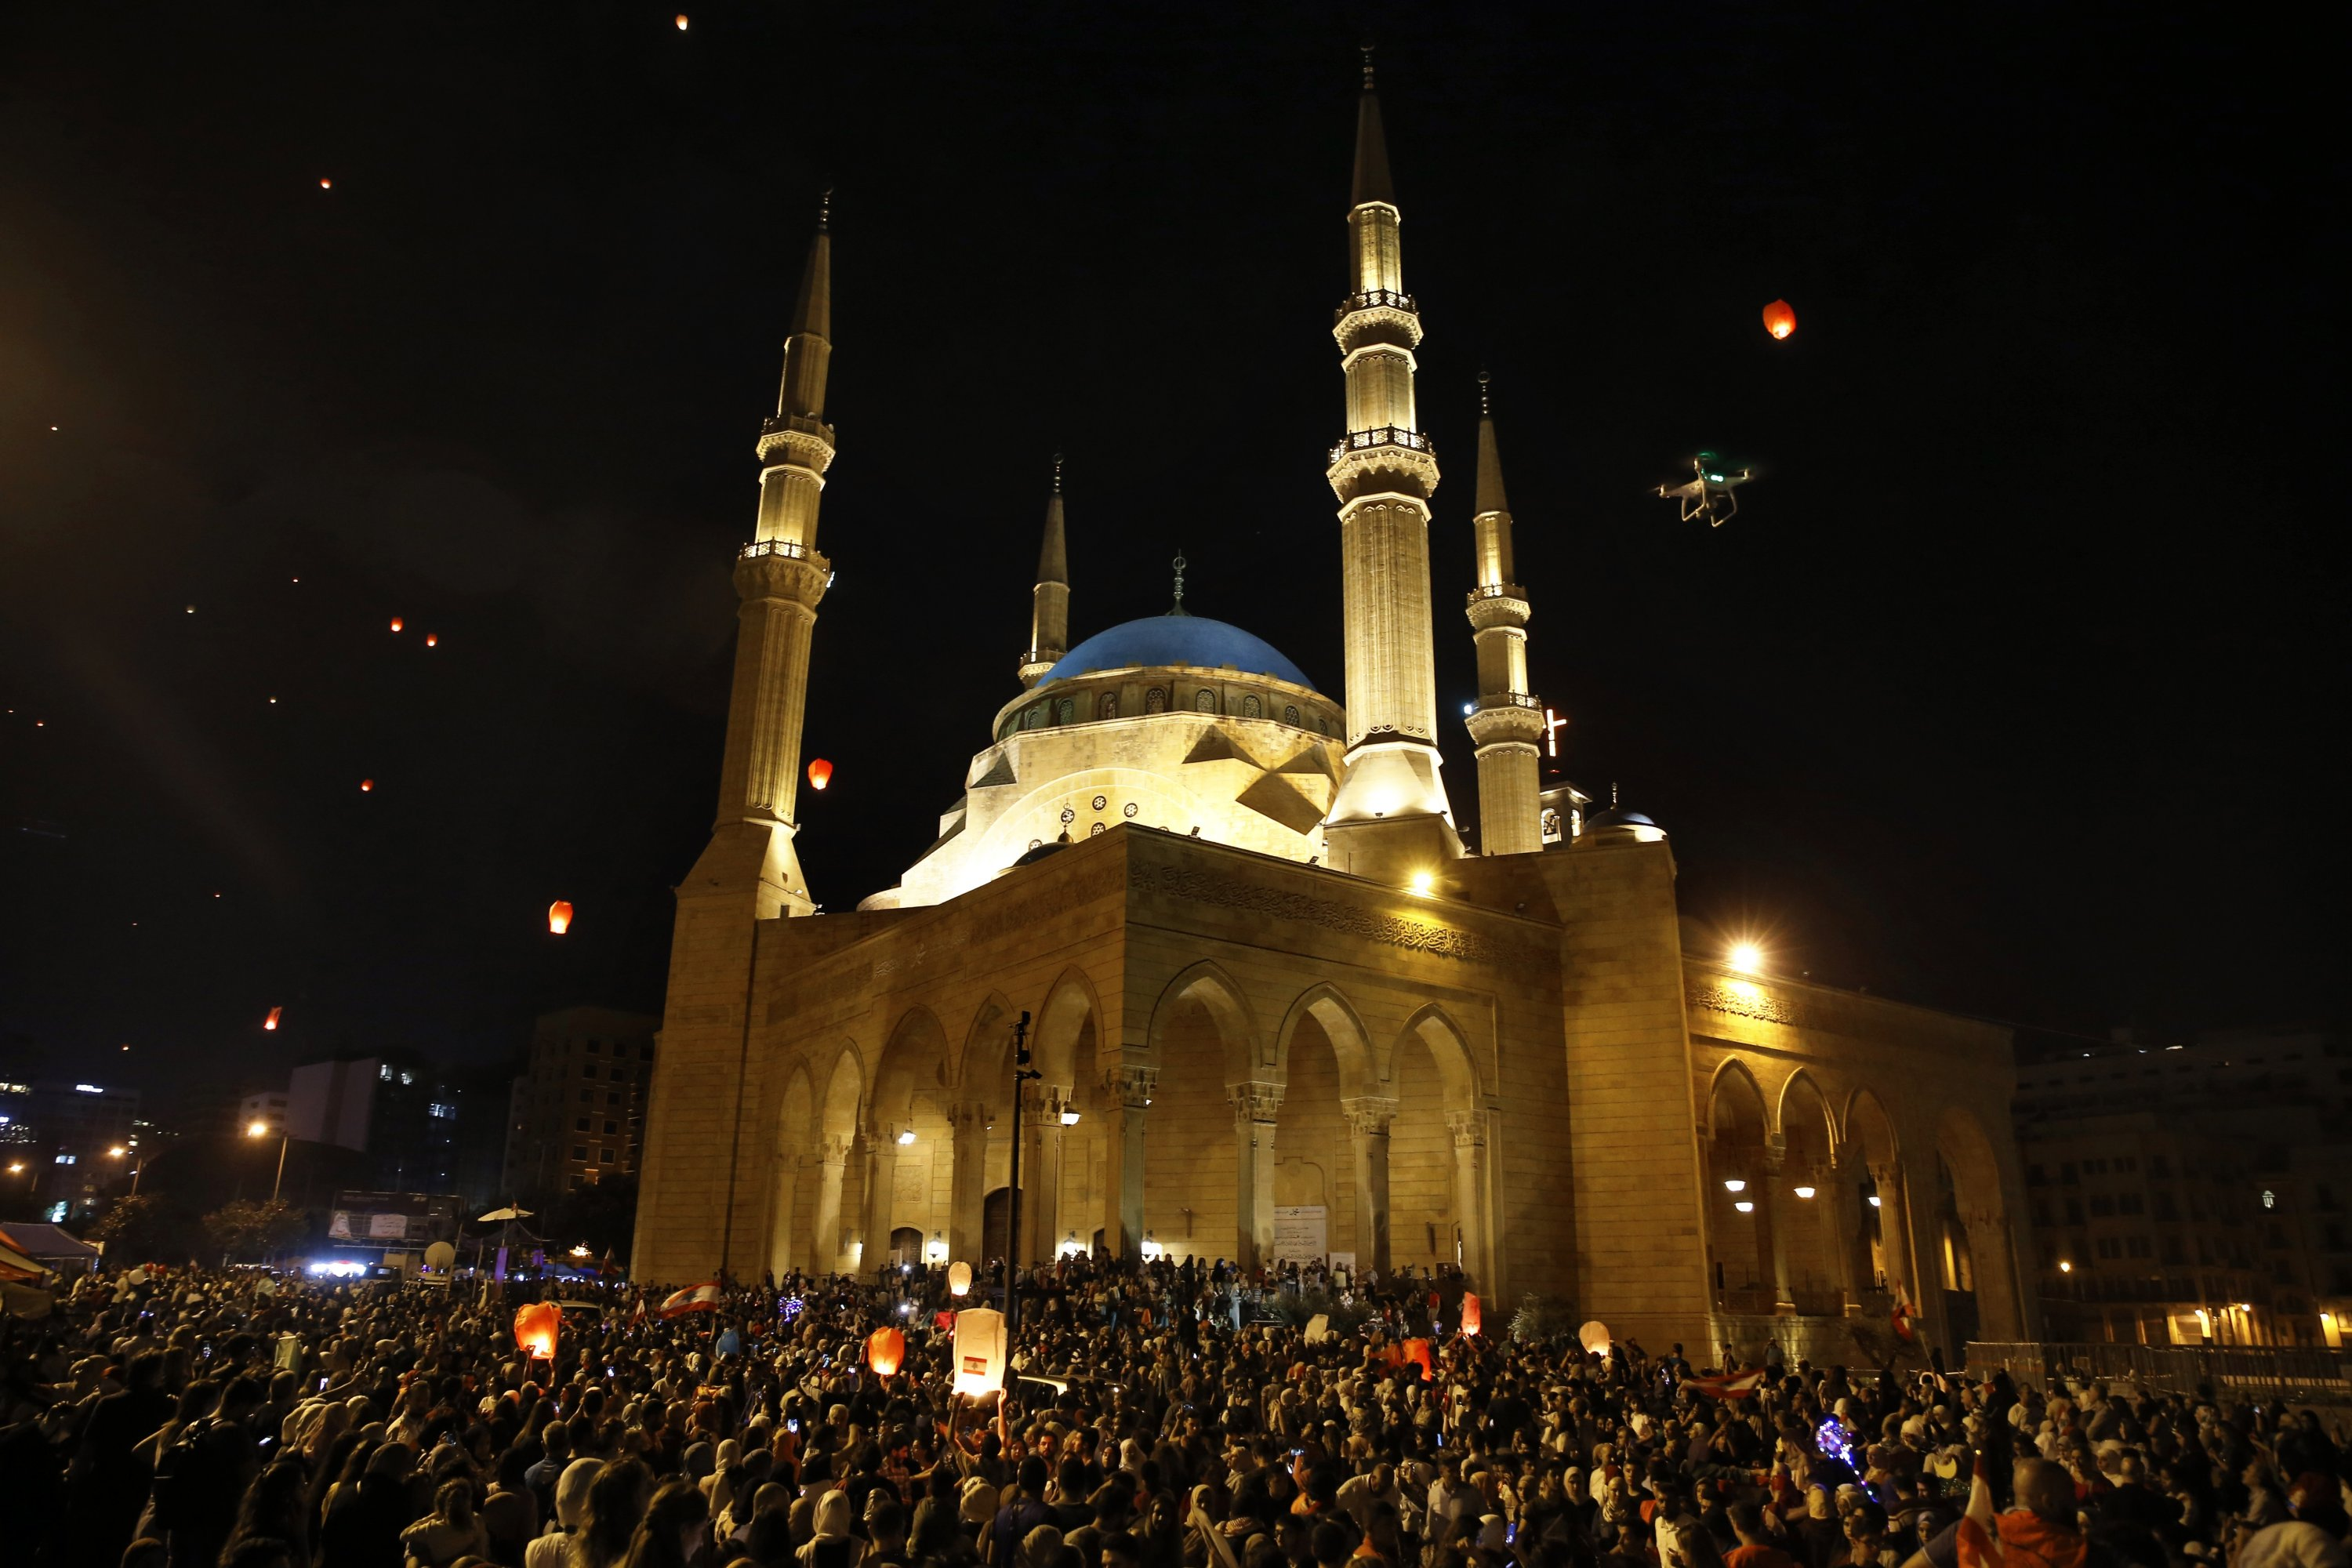 People release paper lanterns during celebration to mark the of birth anniversary of Islam's Prophet Mohammed, in front of the Mohammad al-Amin Mosque in Beirut, Lebanon, Saturday, Nov. 9, 2019. (AP PHOTO)